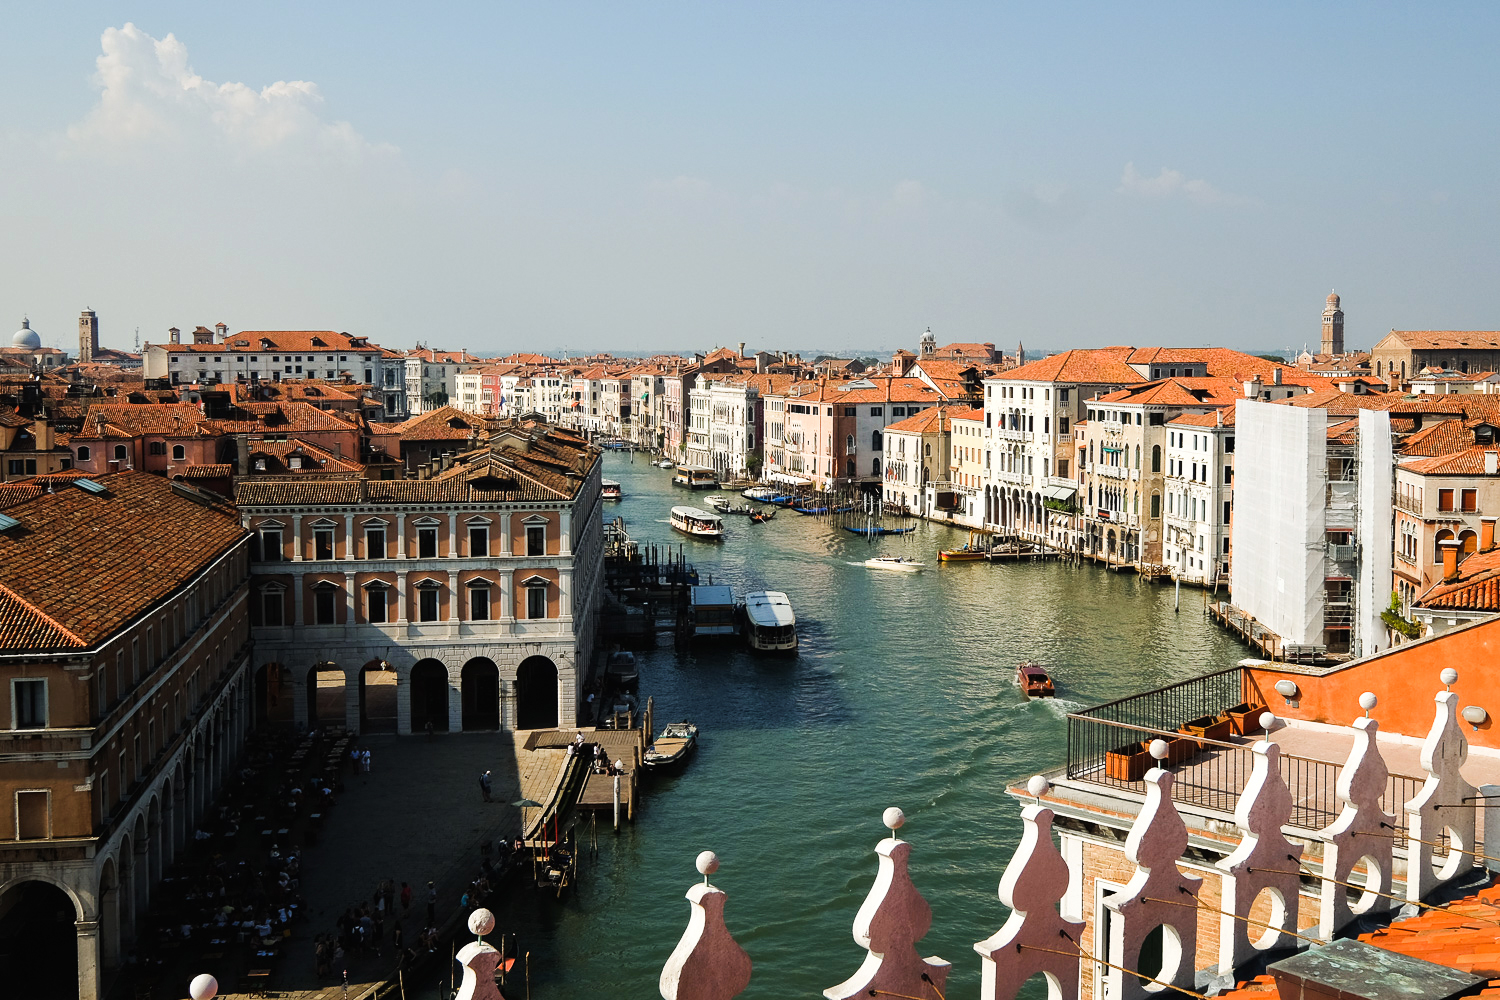 The view from the rooftop terrace at Fondaco dei Tedeschi in Venice, Italy